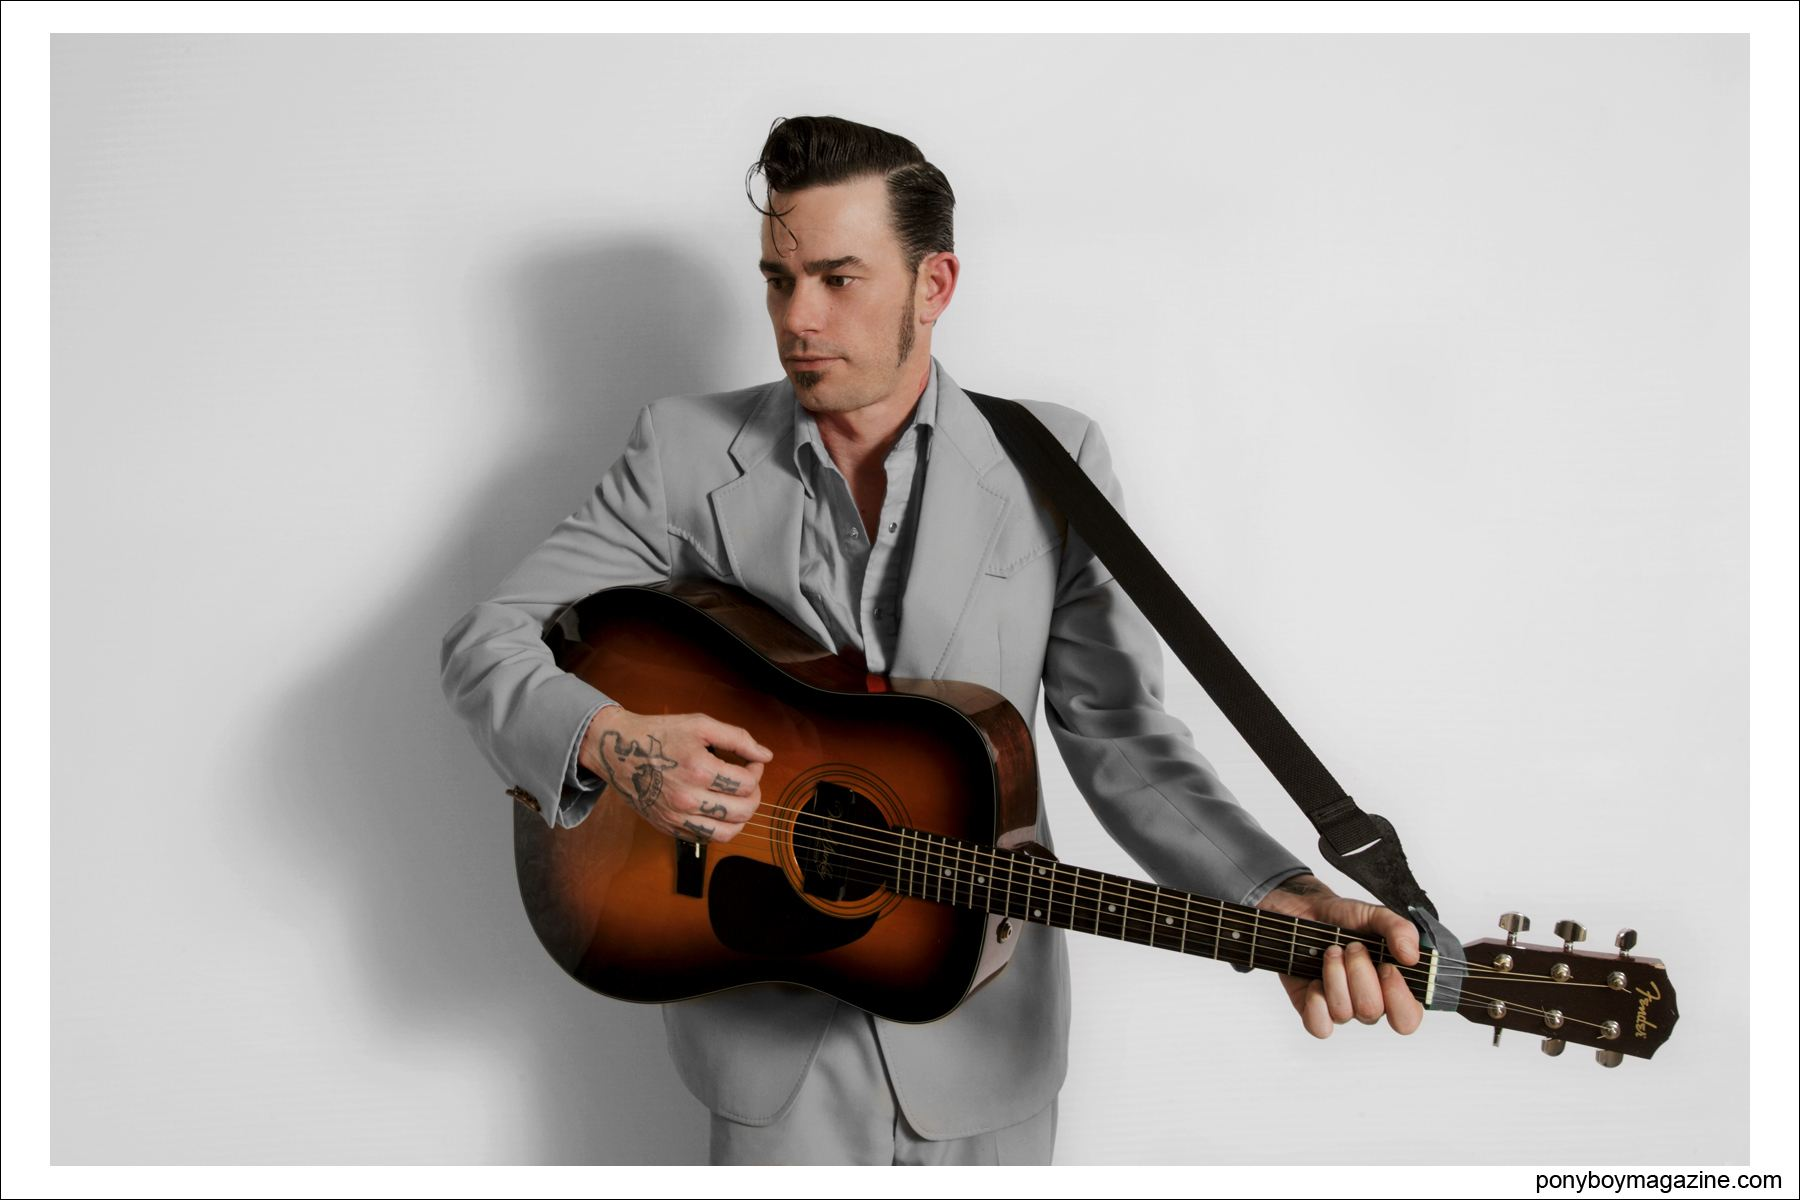 Musician Cash O'Riley photographed at VLV rockabilly weekender by Alexander Thompson for Ponyboy Magazine in NYC.